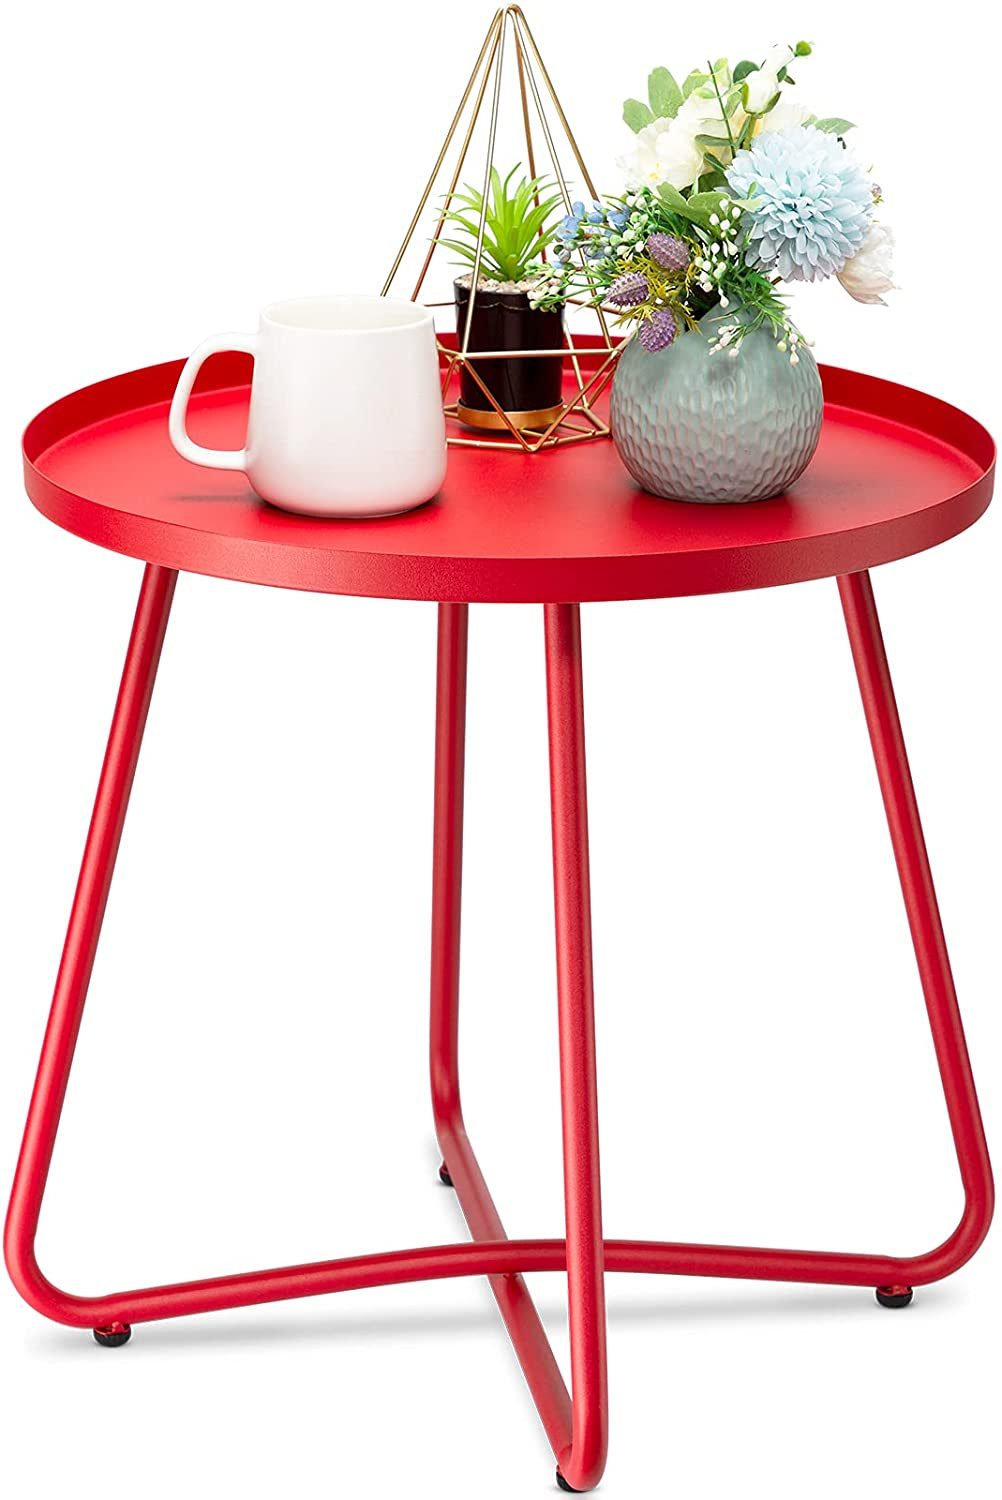 danpinera Outdoor Side Tables, Weather Resistant Steel Patio Side Table, Small Round Outdoor End Table Metal Side Table for Patio Yard Balcony Garden Bedside (Red)